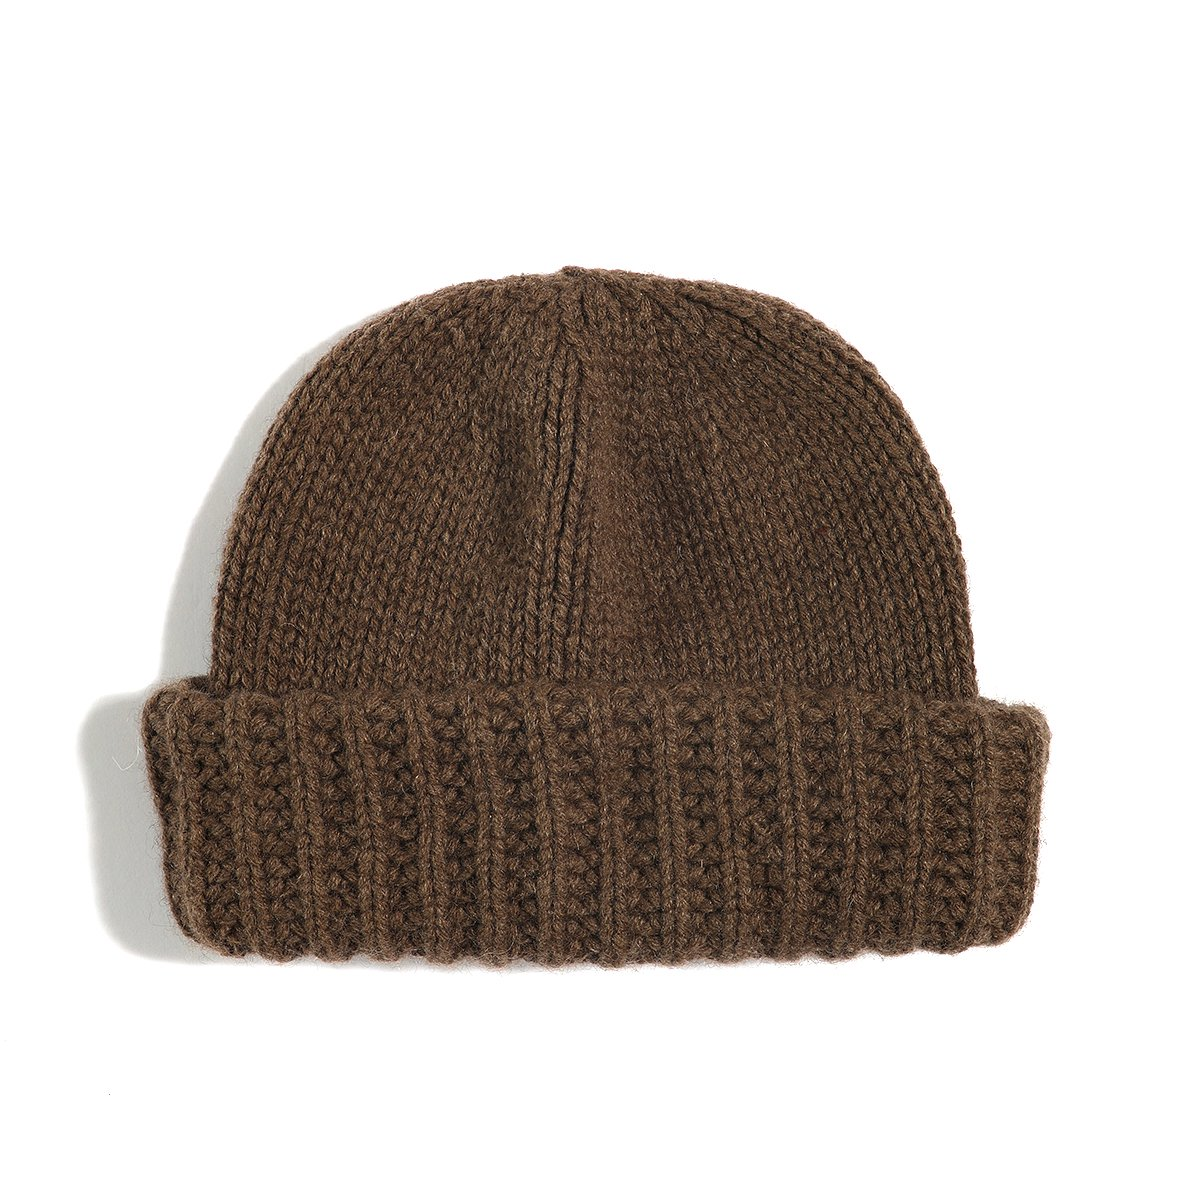 【SALE】YAK WIDE RIB KNITCAP